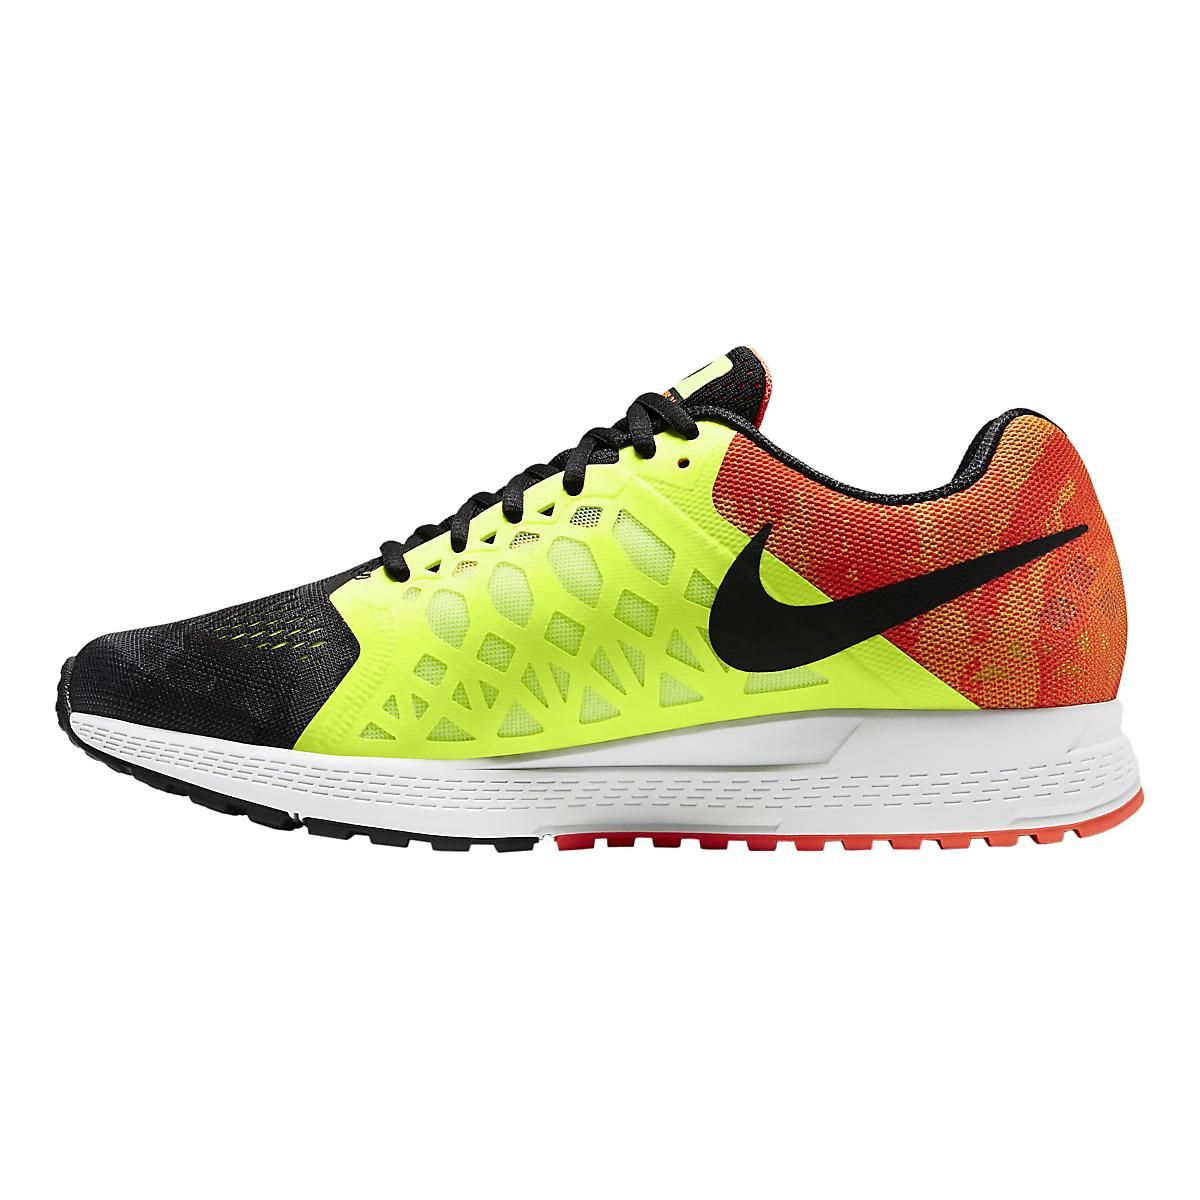 best sneakers 34b9f cc9a7 ... season in the shoe that honors its world-renowned Pegasus legacy while  offering some added perks with the Mens Nike Air Zoom Pegasus 31 Oregon  Project